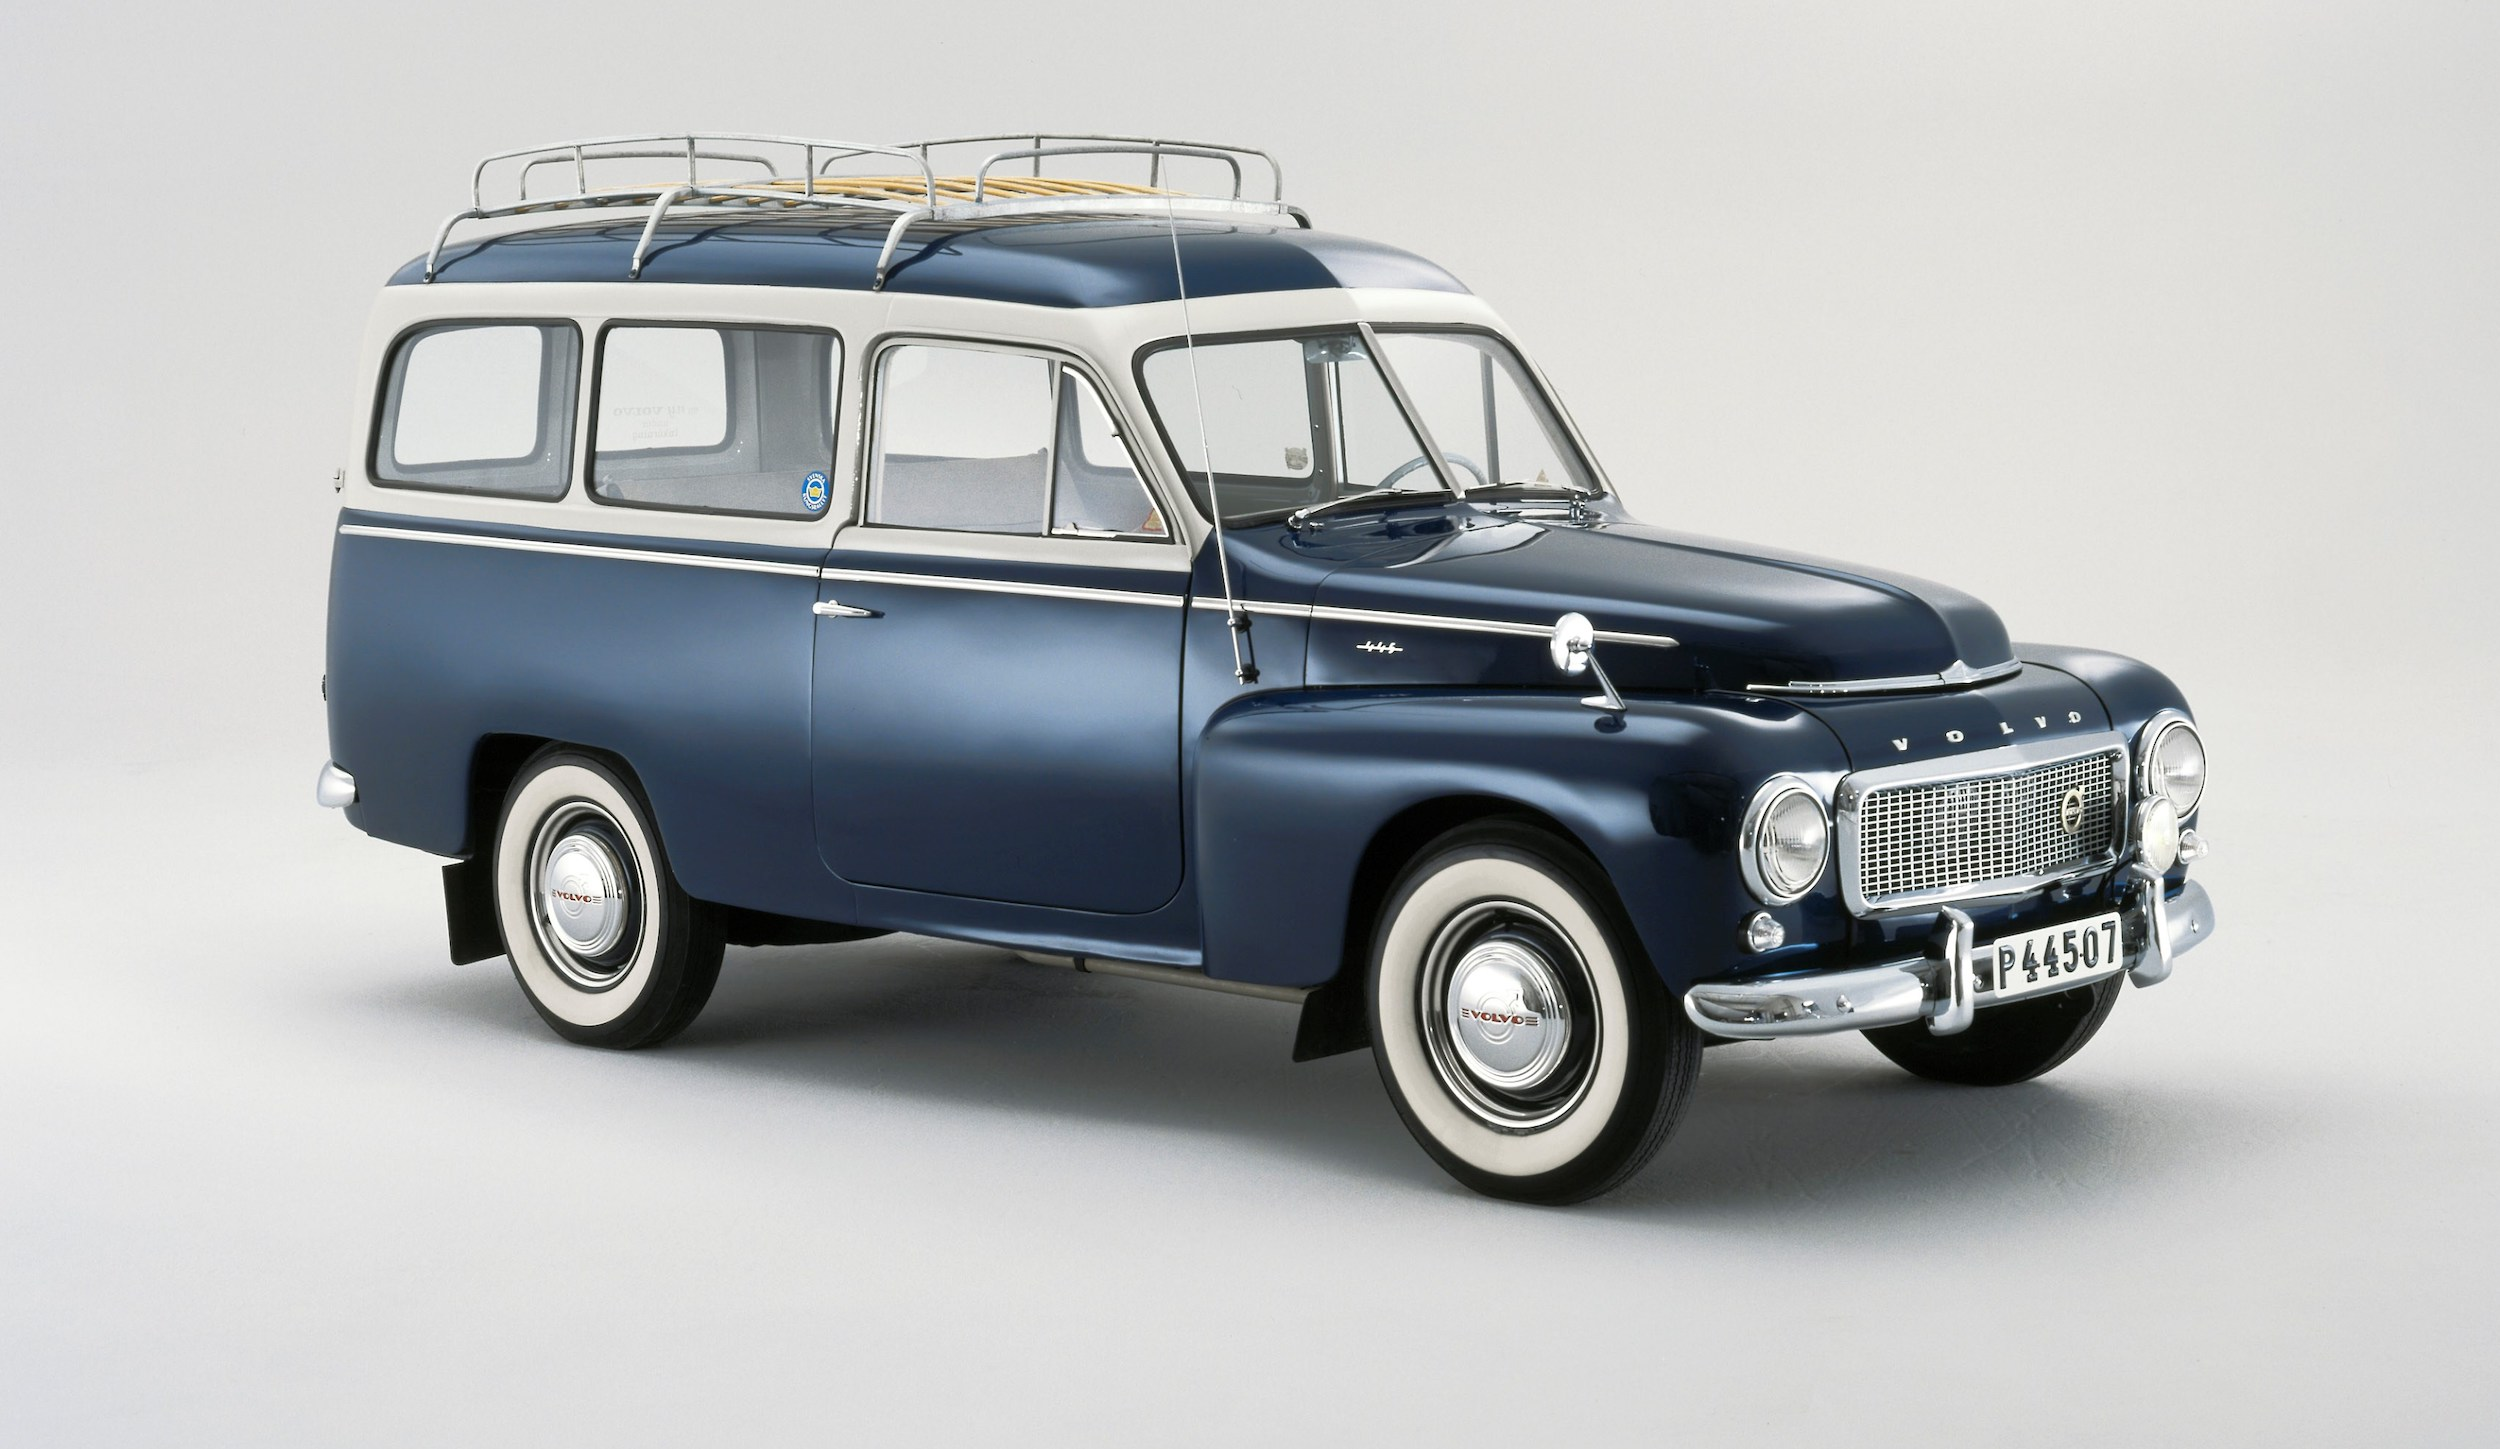 The Volvo Duett estate